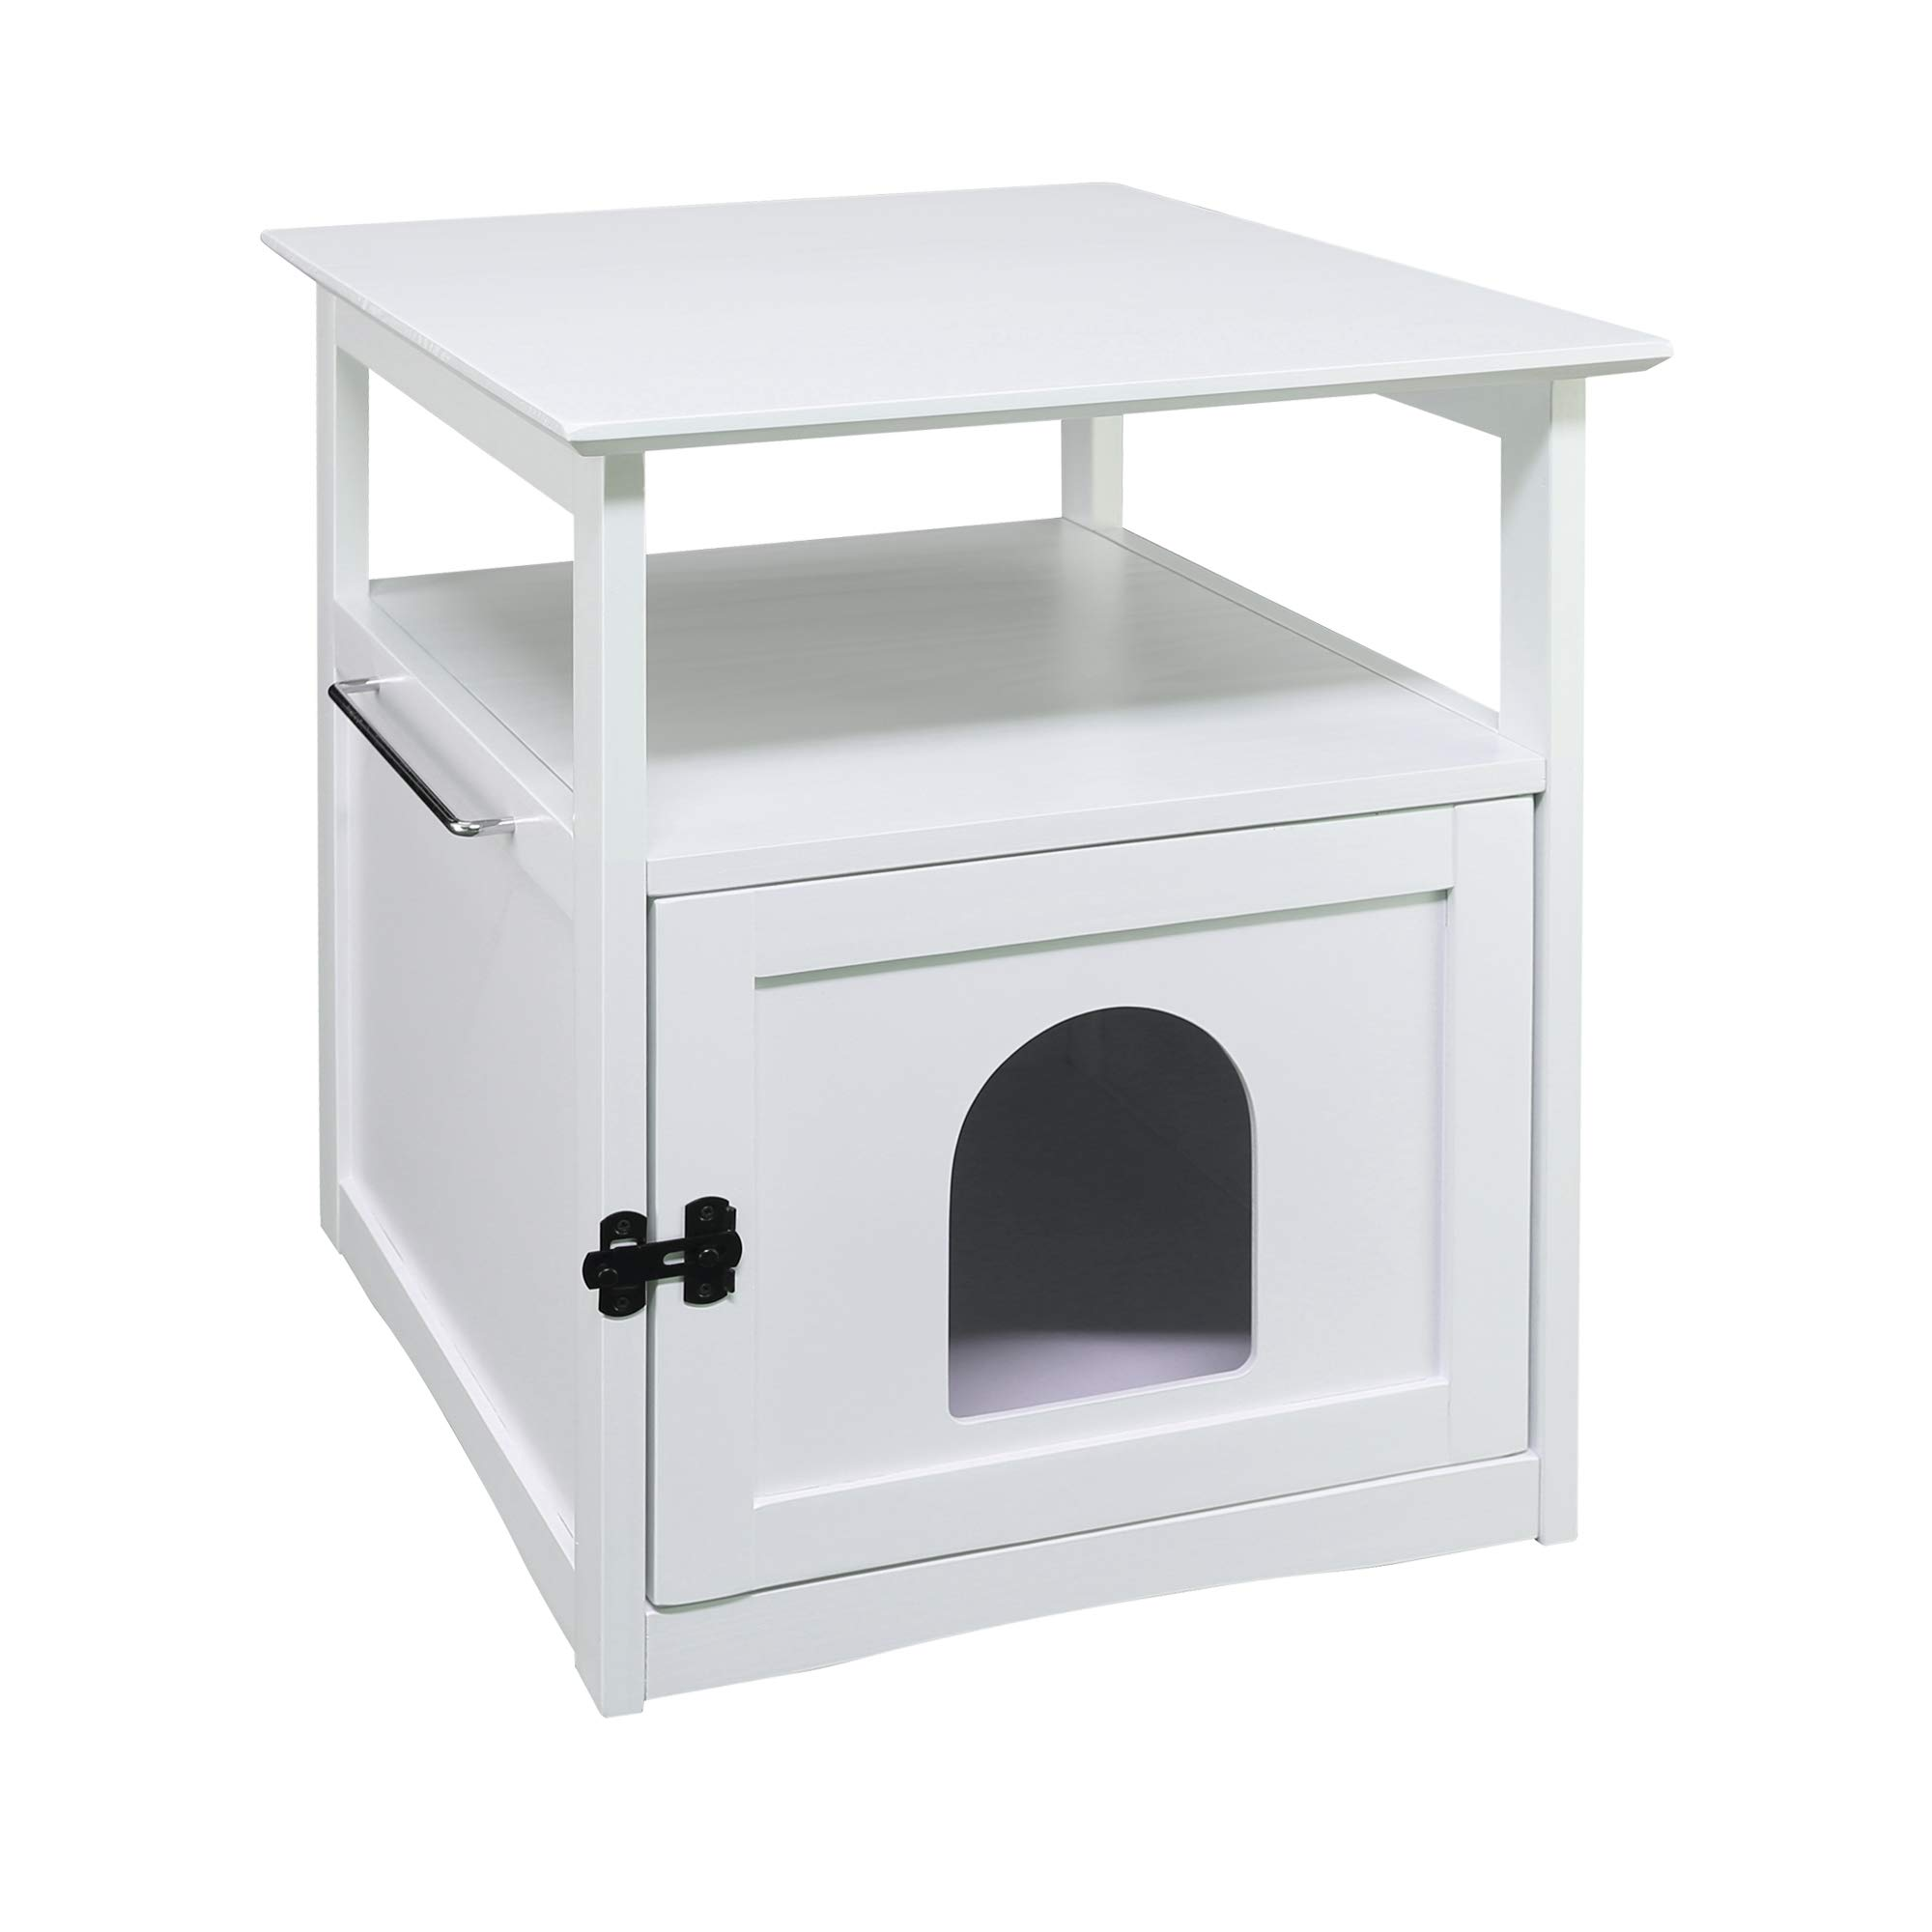 Casual Home 608-41 Aristo Wooden End Table-White Litter Box, 20.5'' W x 23.5'' D x 25'' H,